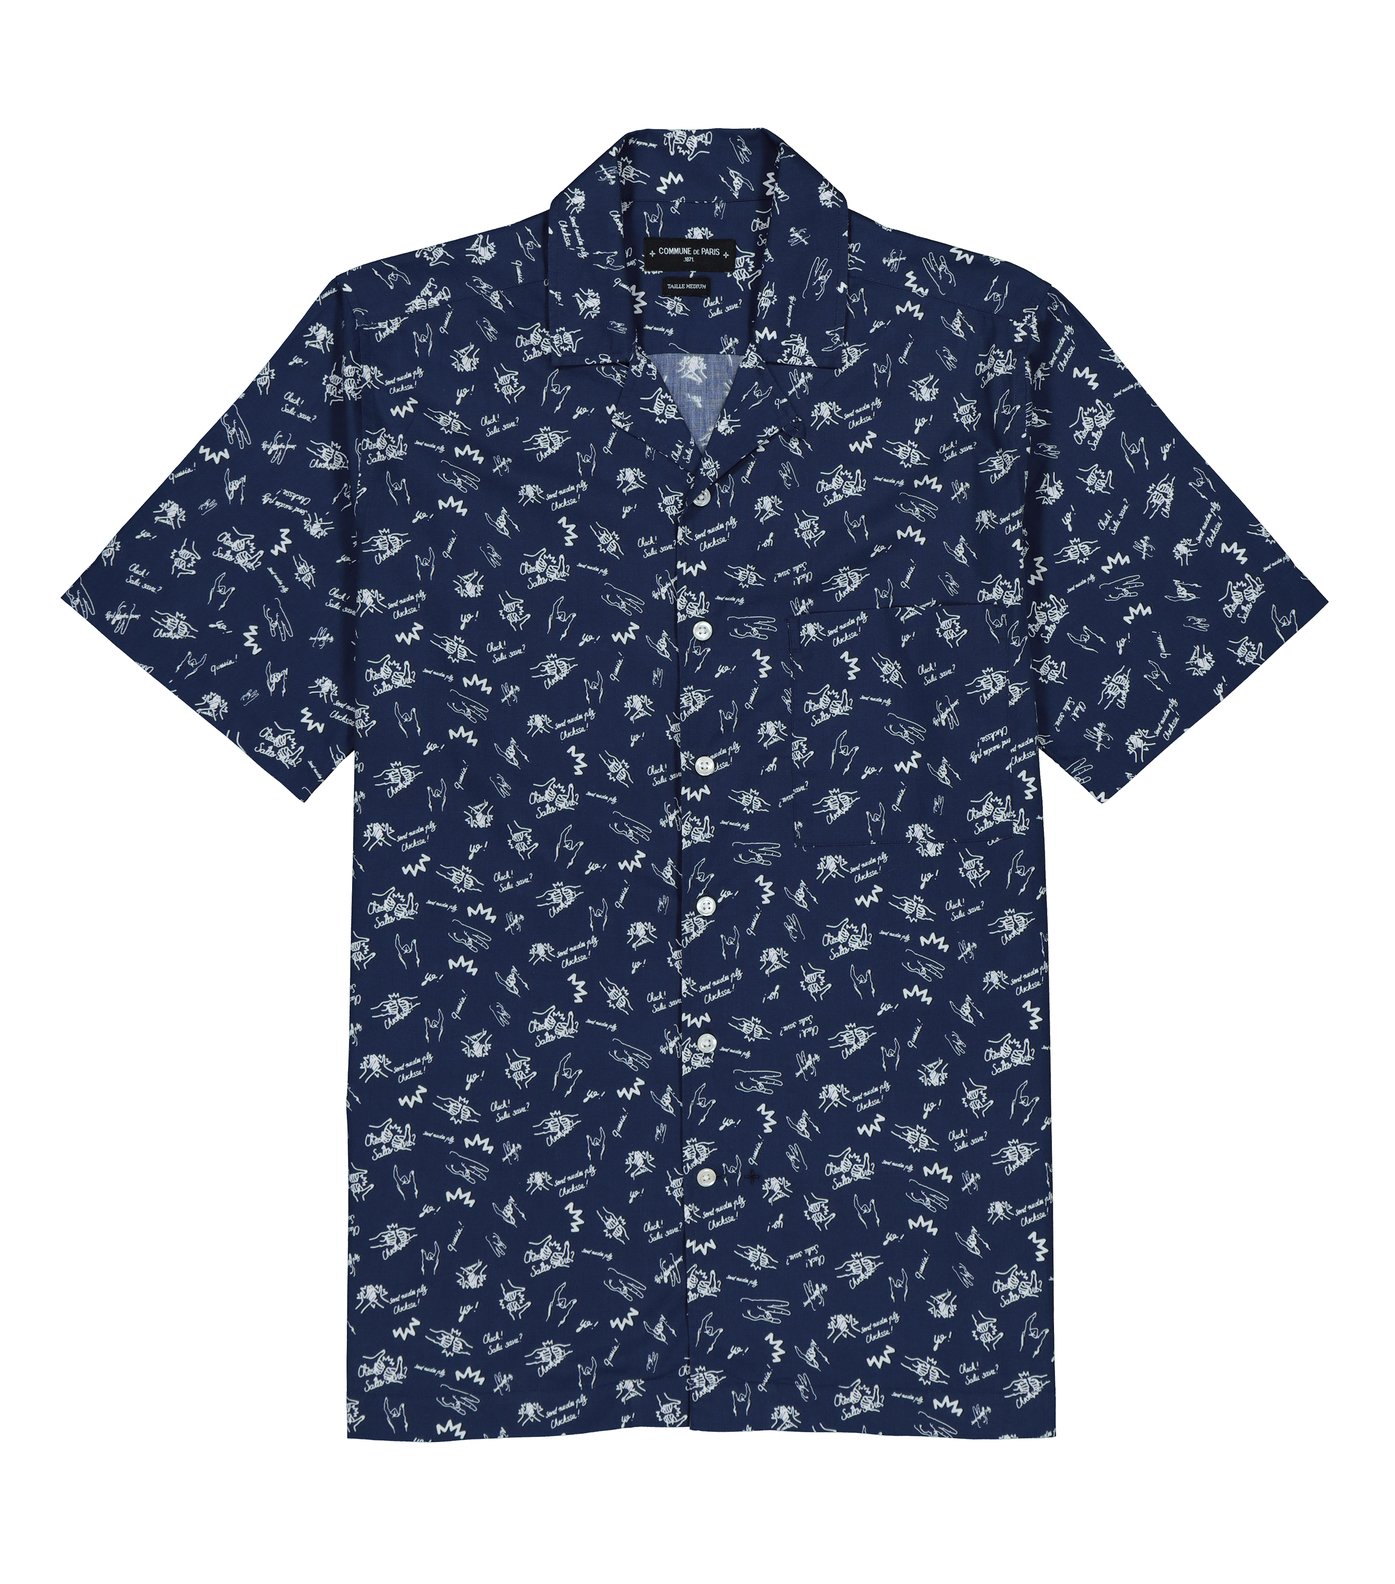 SHIRT HILO - Navy allover